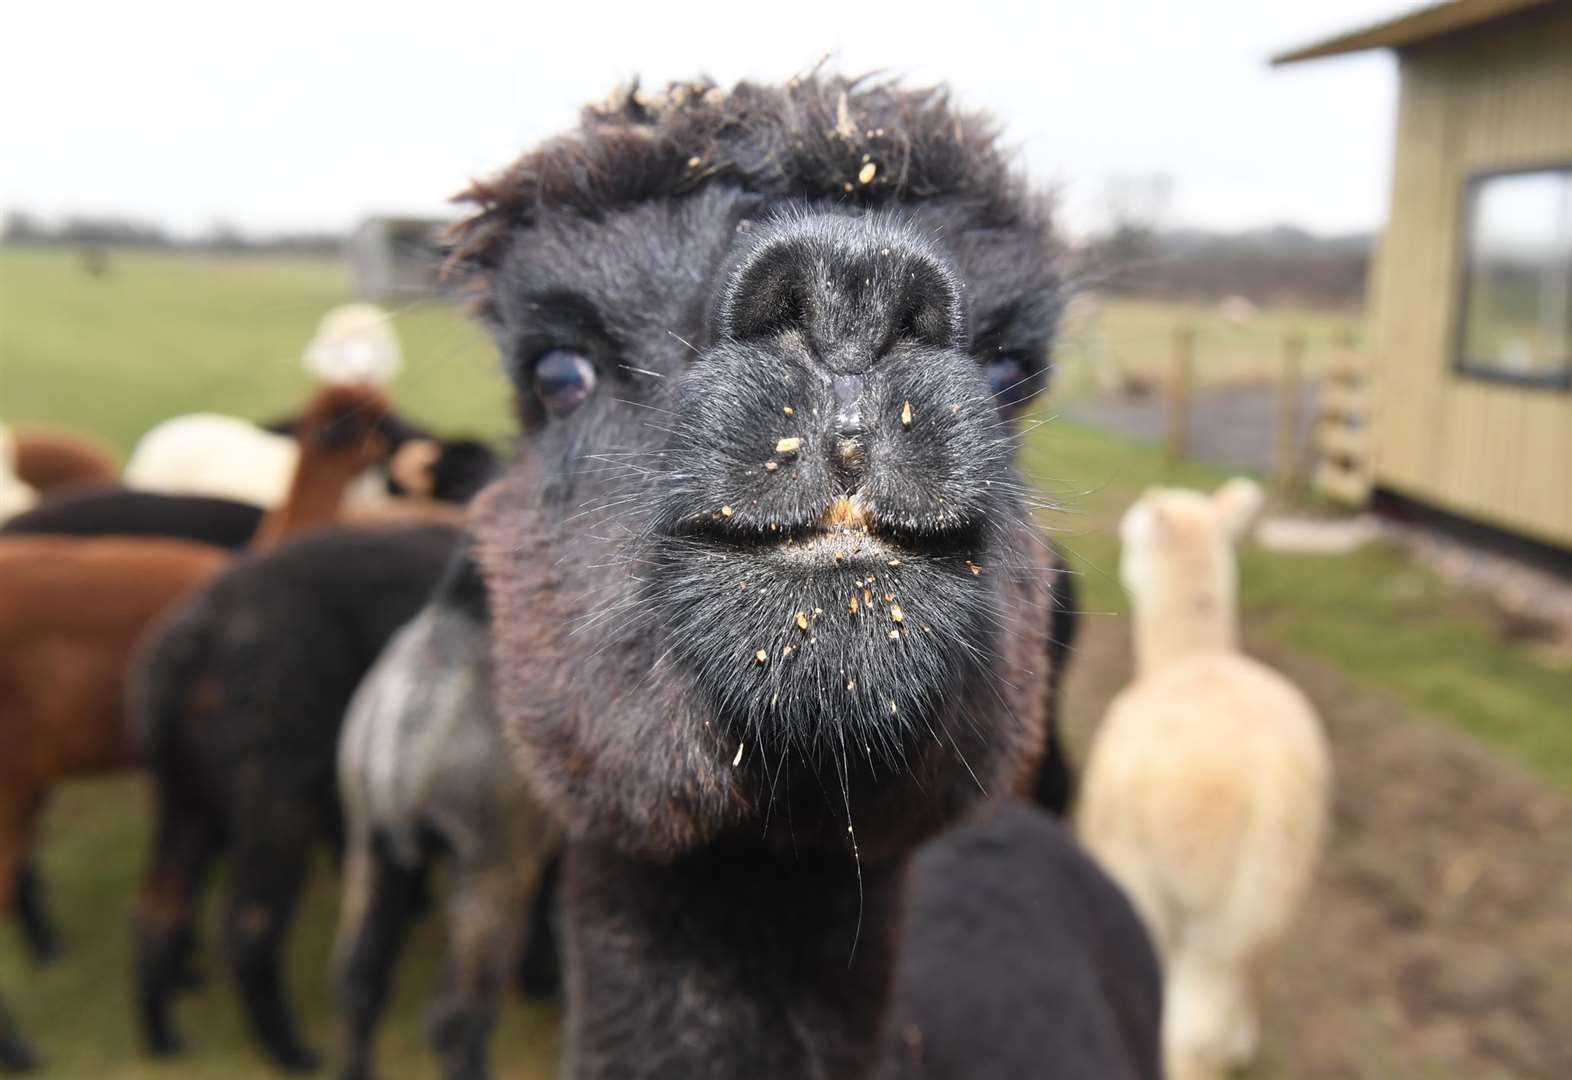 Alpaca fundraising brings fame not to be sniffed at